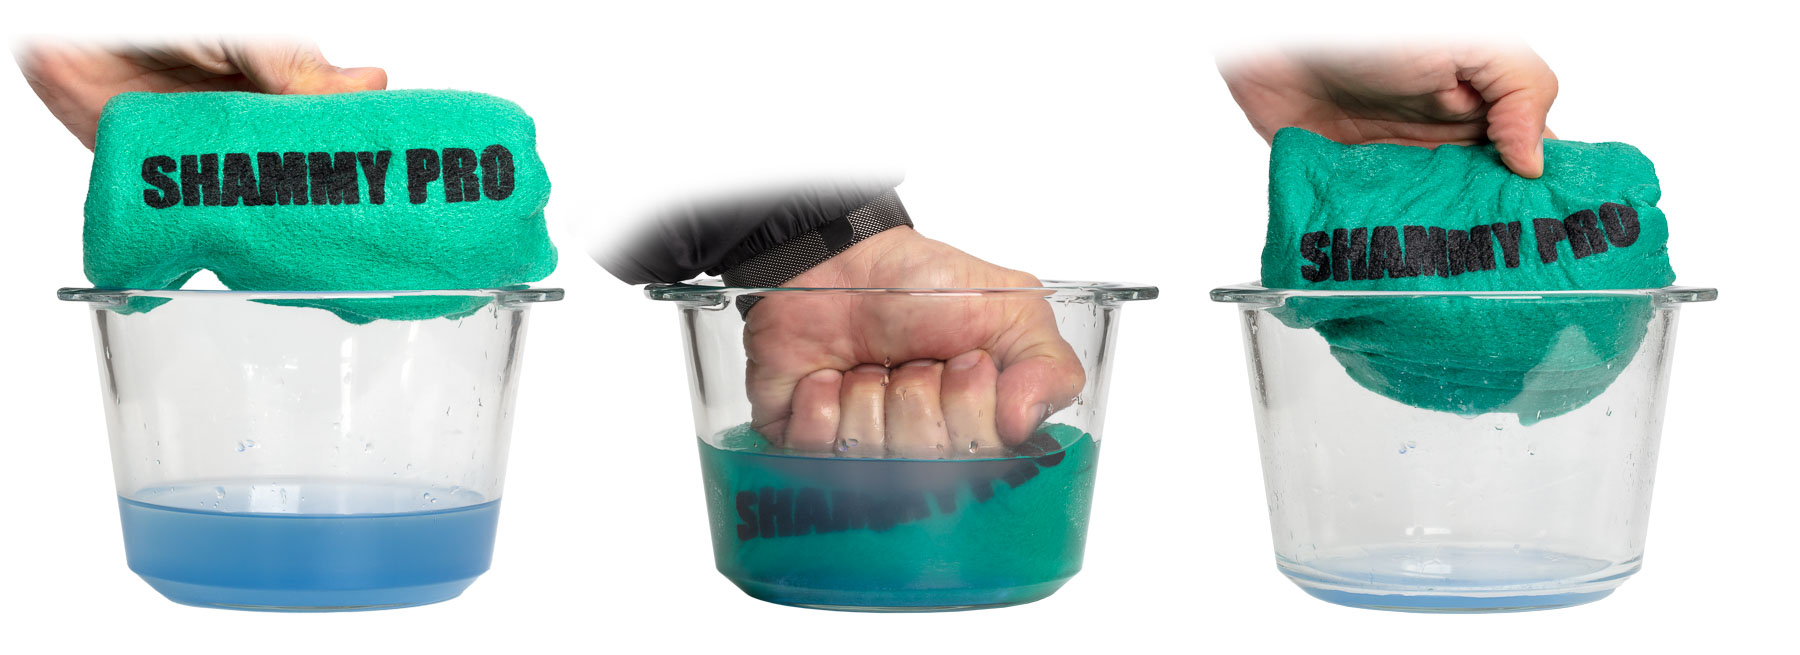 Shammy Pro Demo with Blue liquid in Bowl 3 steps composite - Sample of photo sequence of demonstrating products